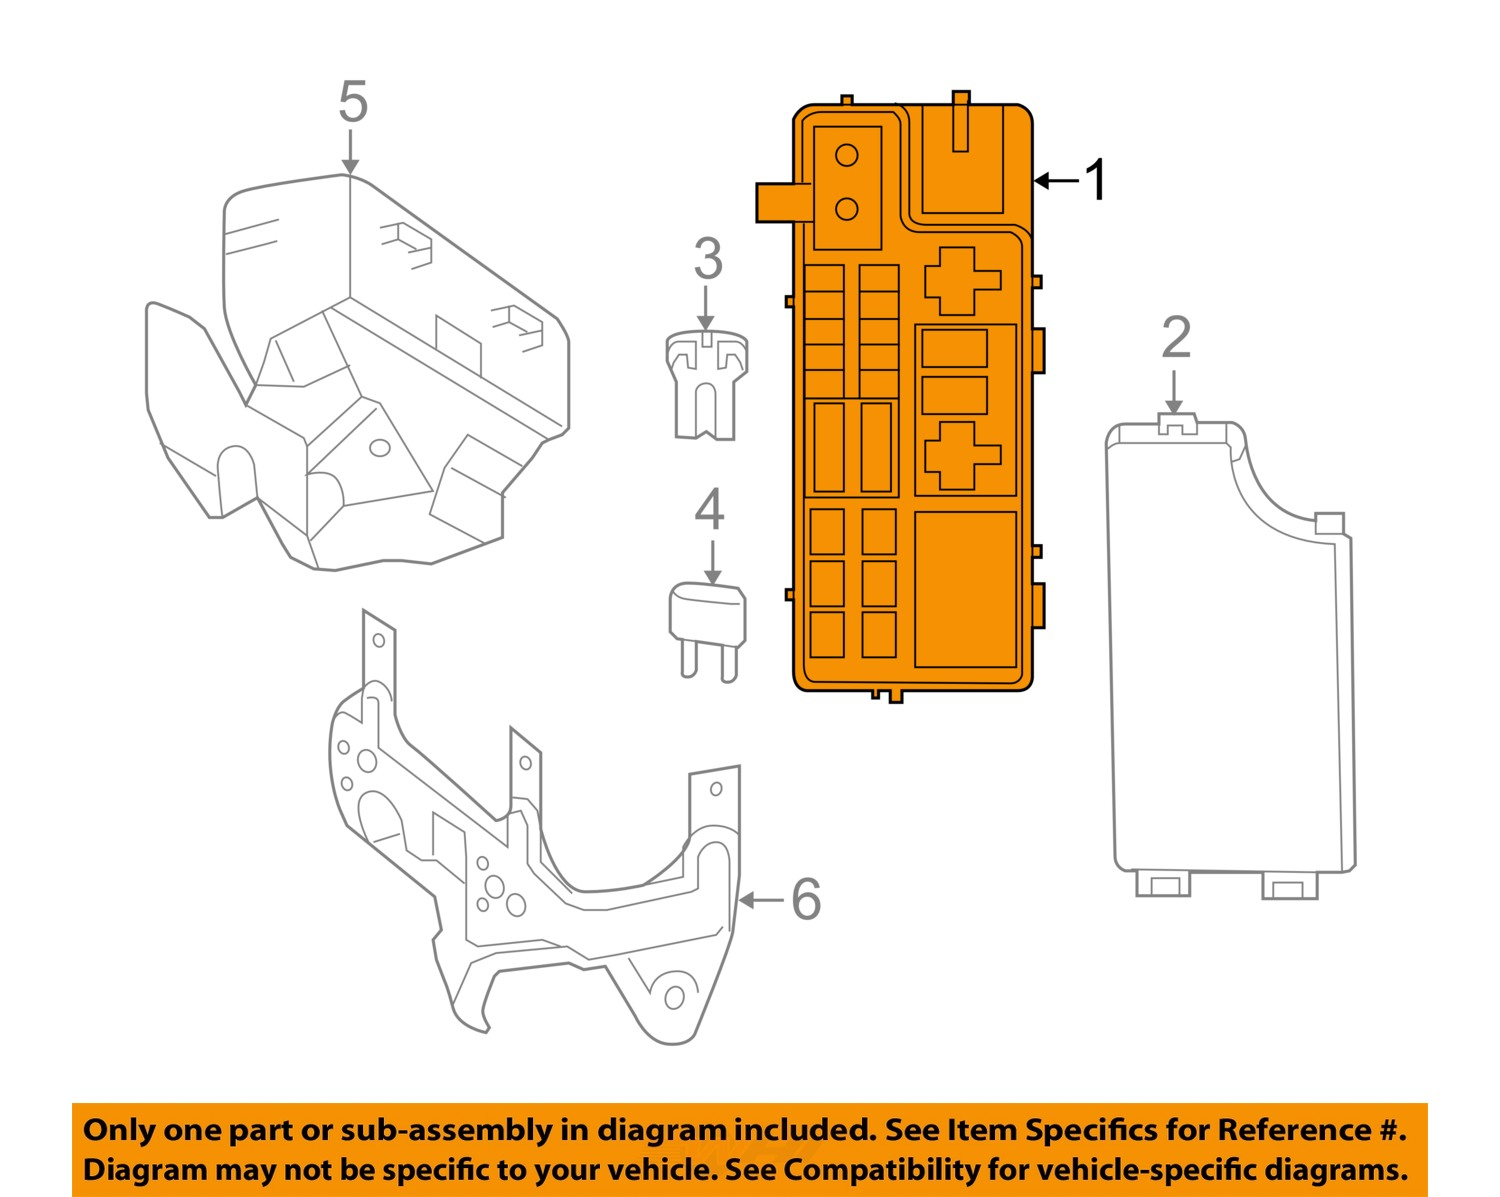 2007 jeep compass fuse box diagram 2008 jeep compass fuse box diagram jeep chrysler oem 2007 compass 2.4l-l4 fuse box-module ...